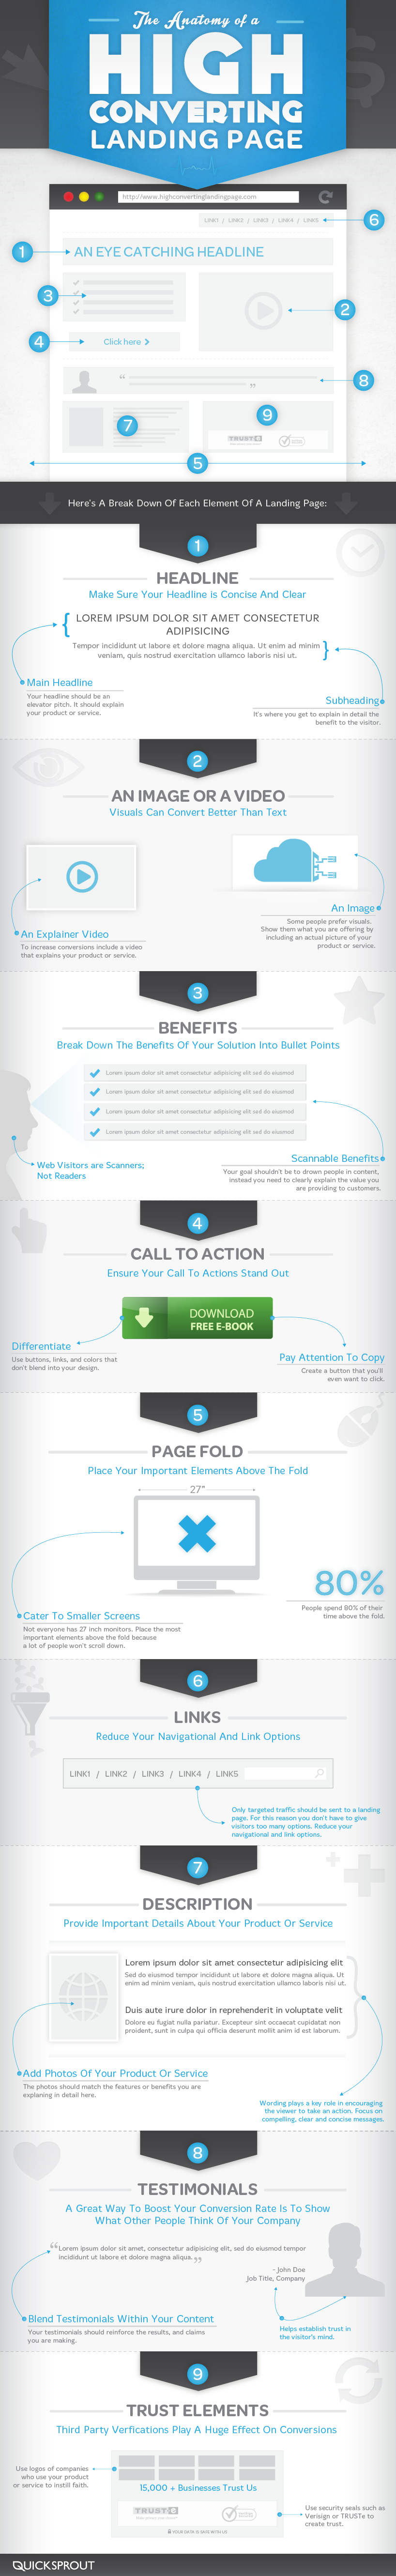 Top Elements Of High Conversion Landing Pages - Best of download bullet points design